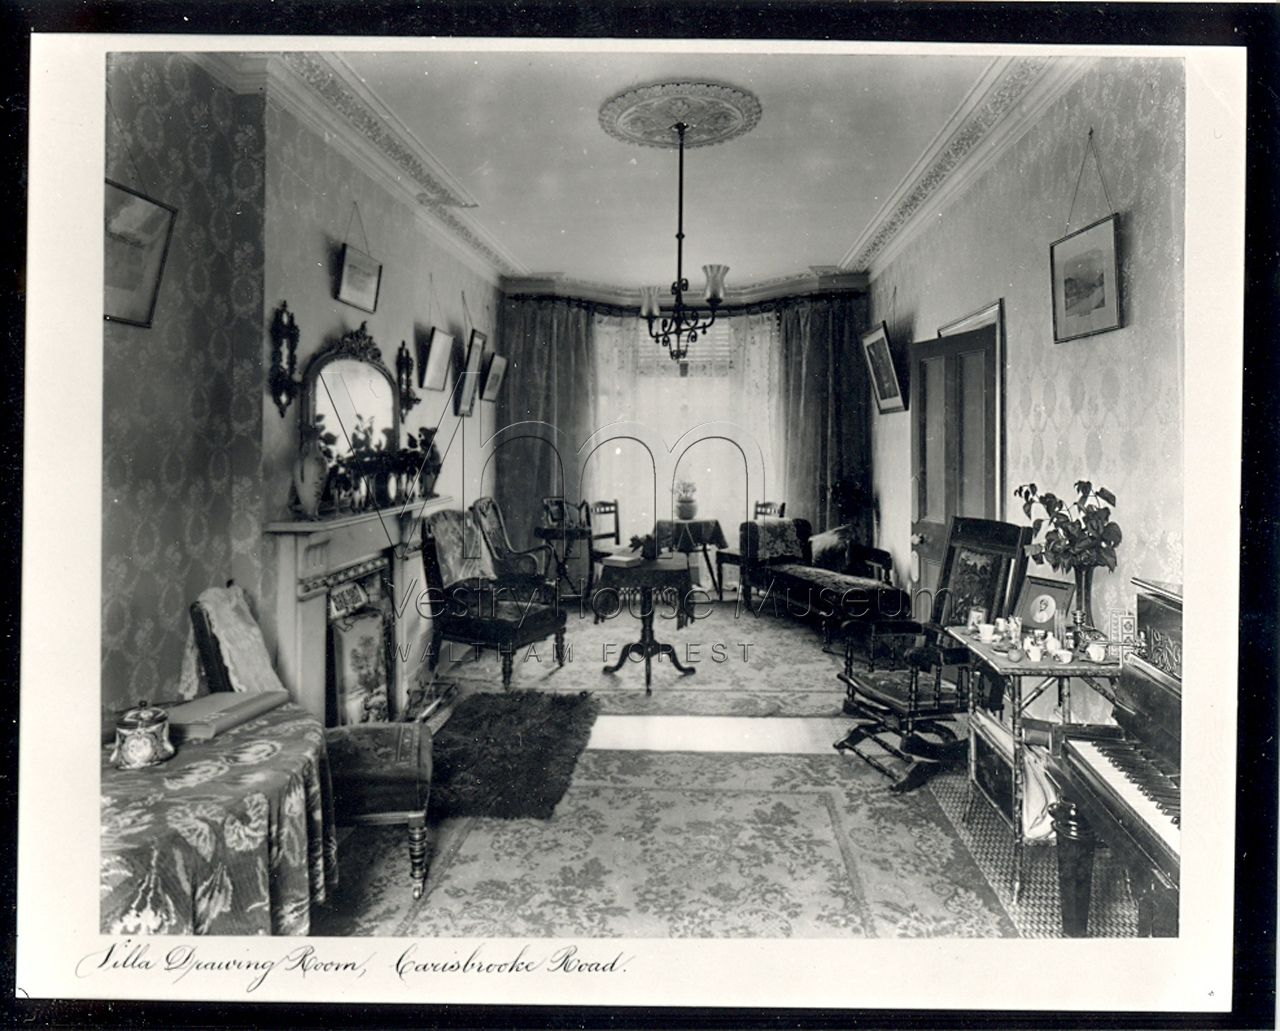 Edwardian drawing room parlour 1900s | old parlors studies